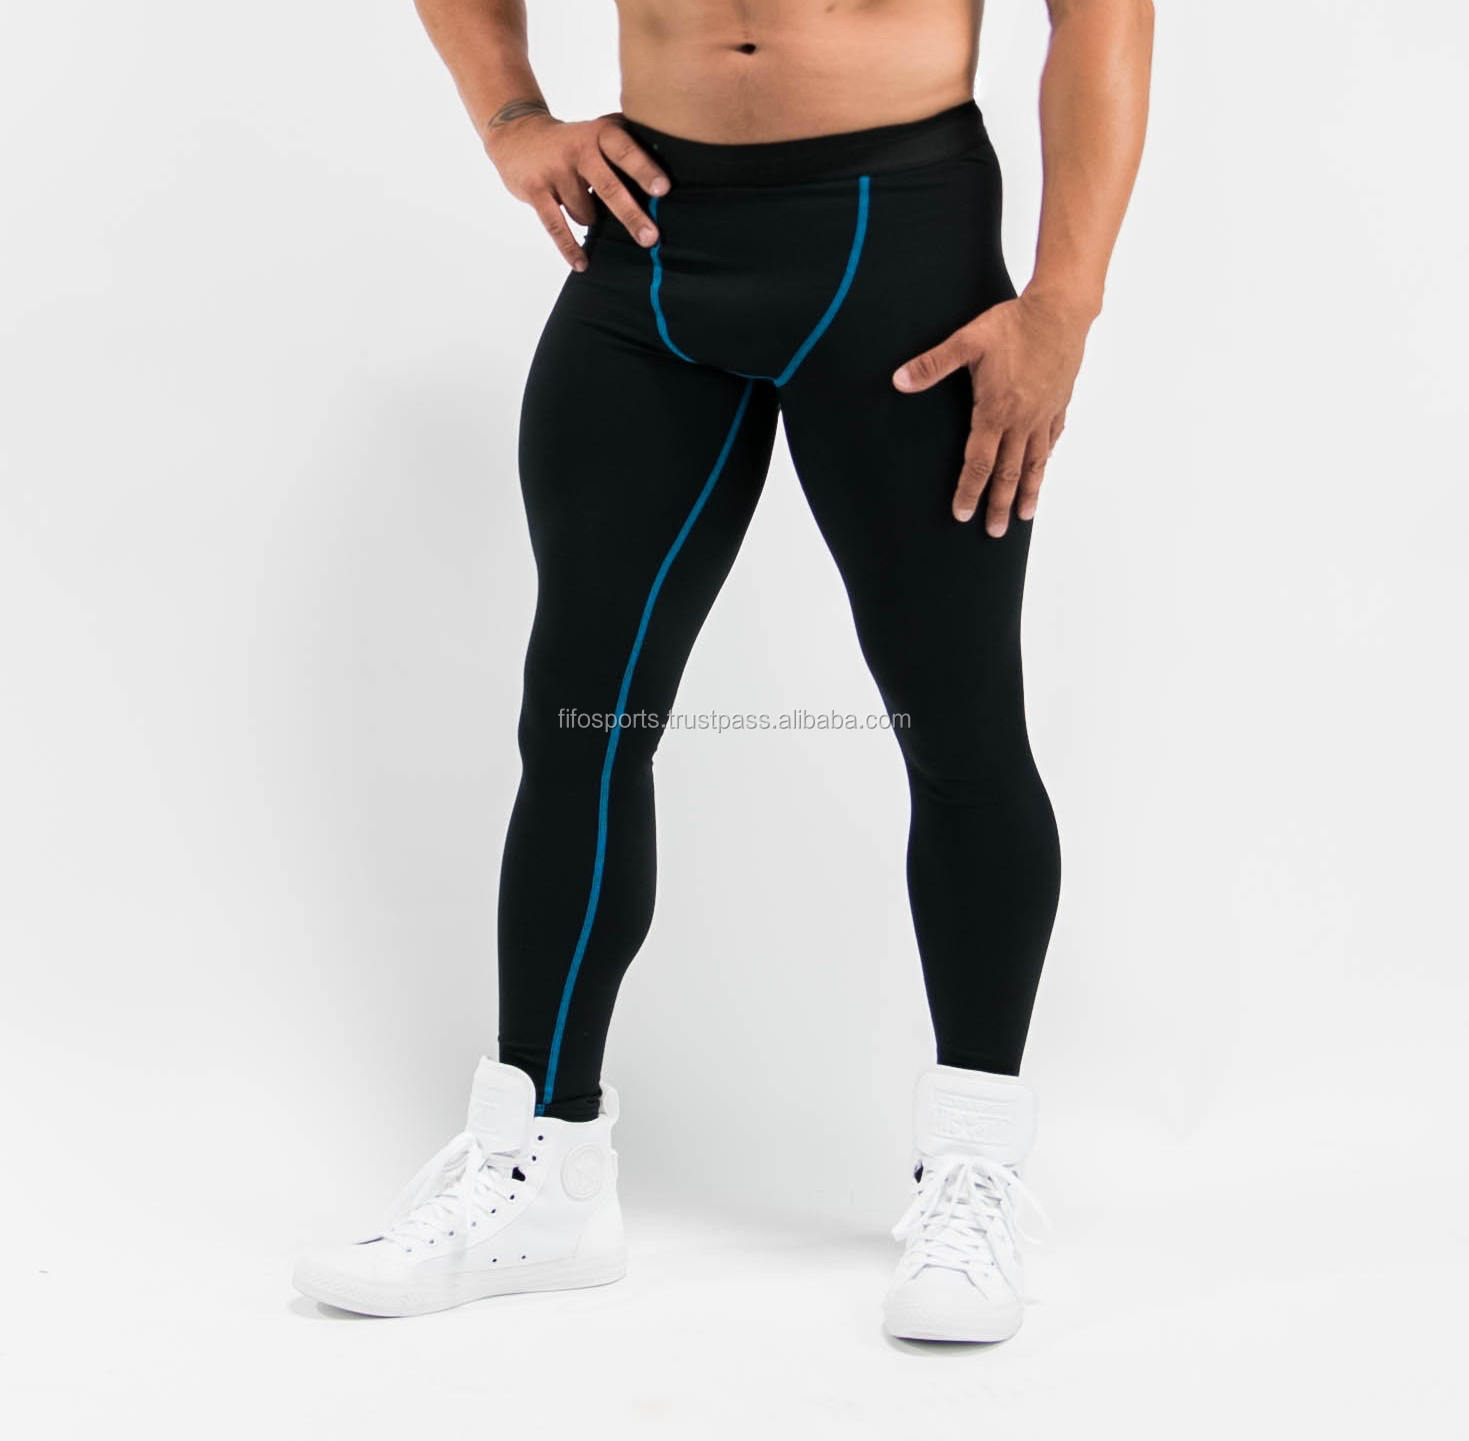 896c833051ea42 sublimated colorful mens sexy tight leggings / high waist yoga pants /  wholesale fitness athletic wear